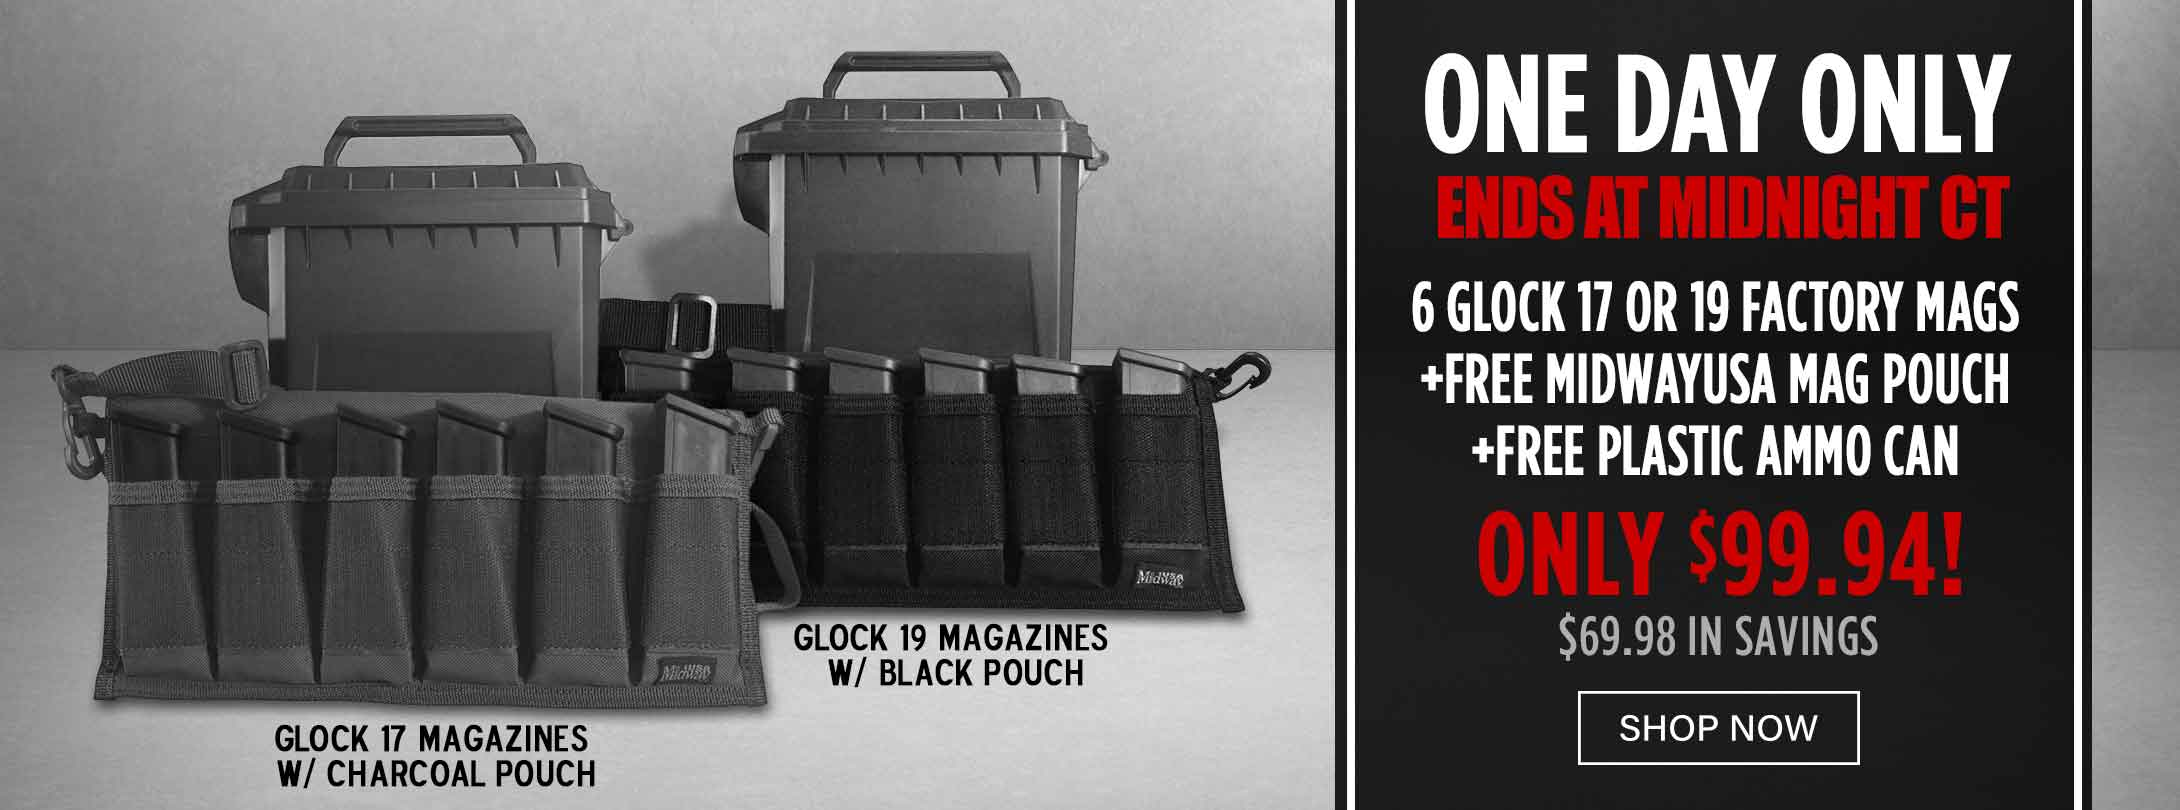 Special Combo Deal with Glock Mags